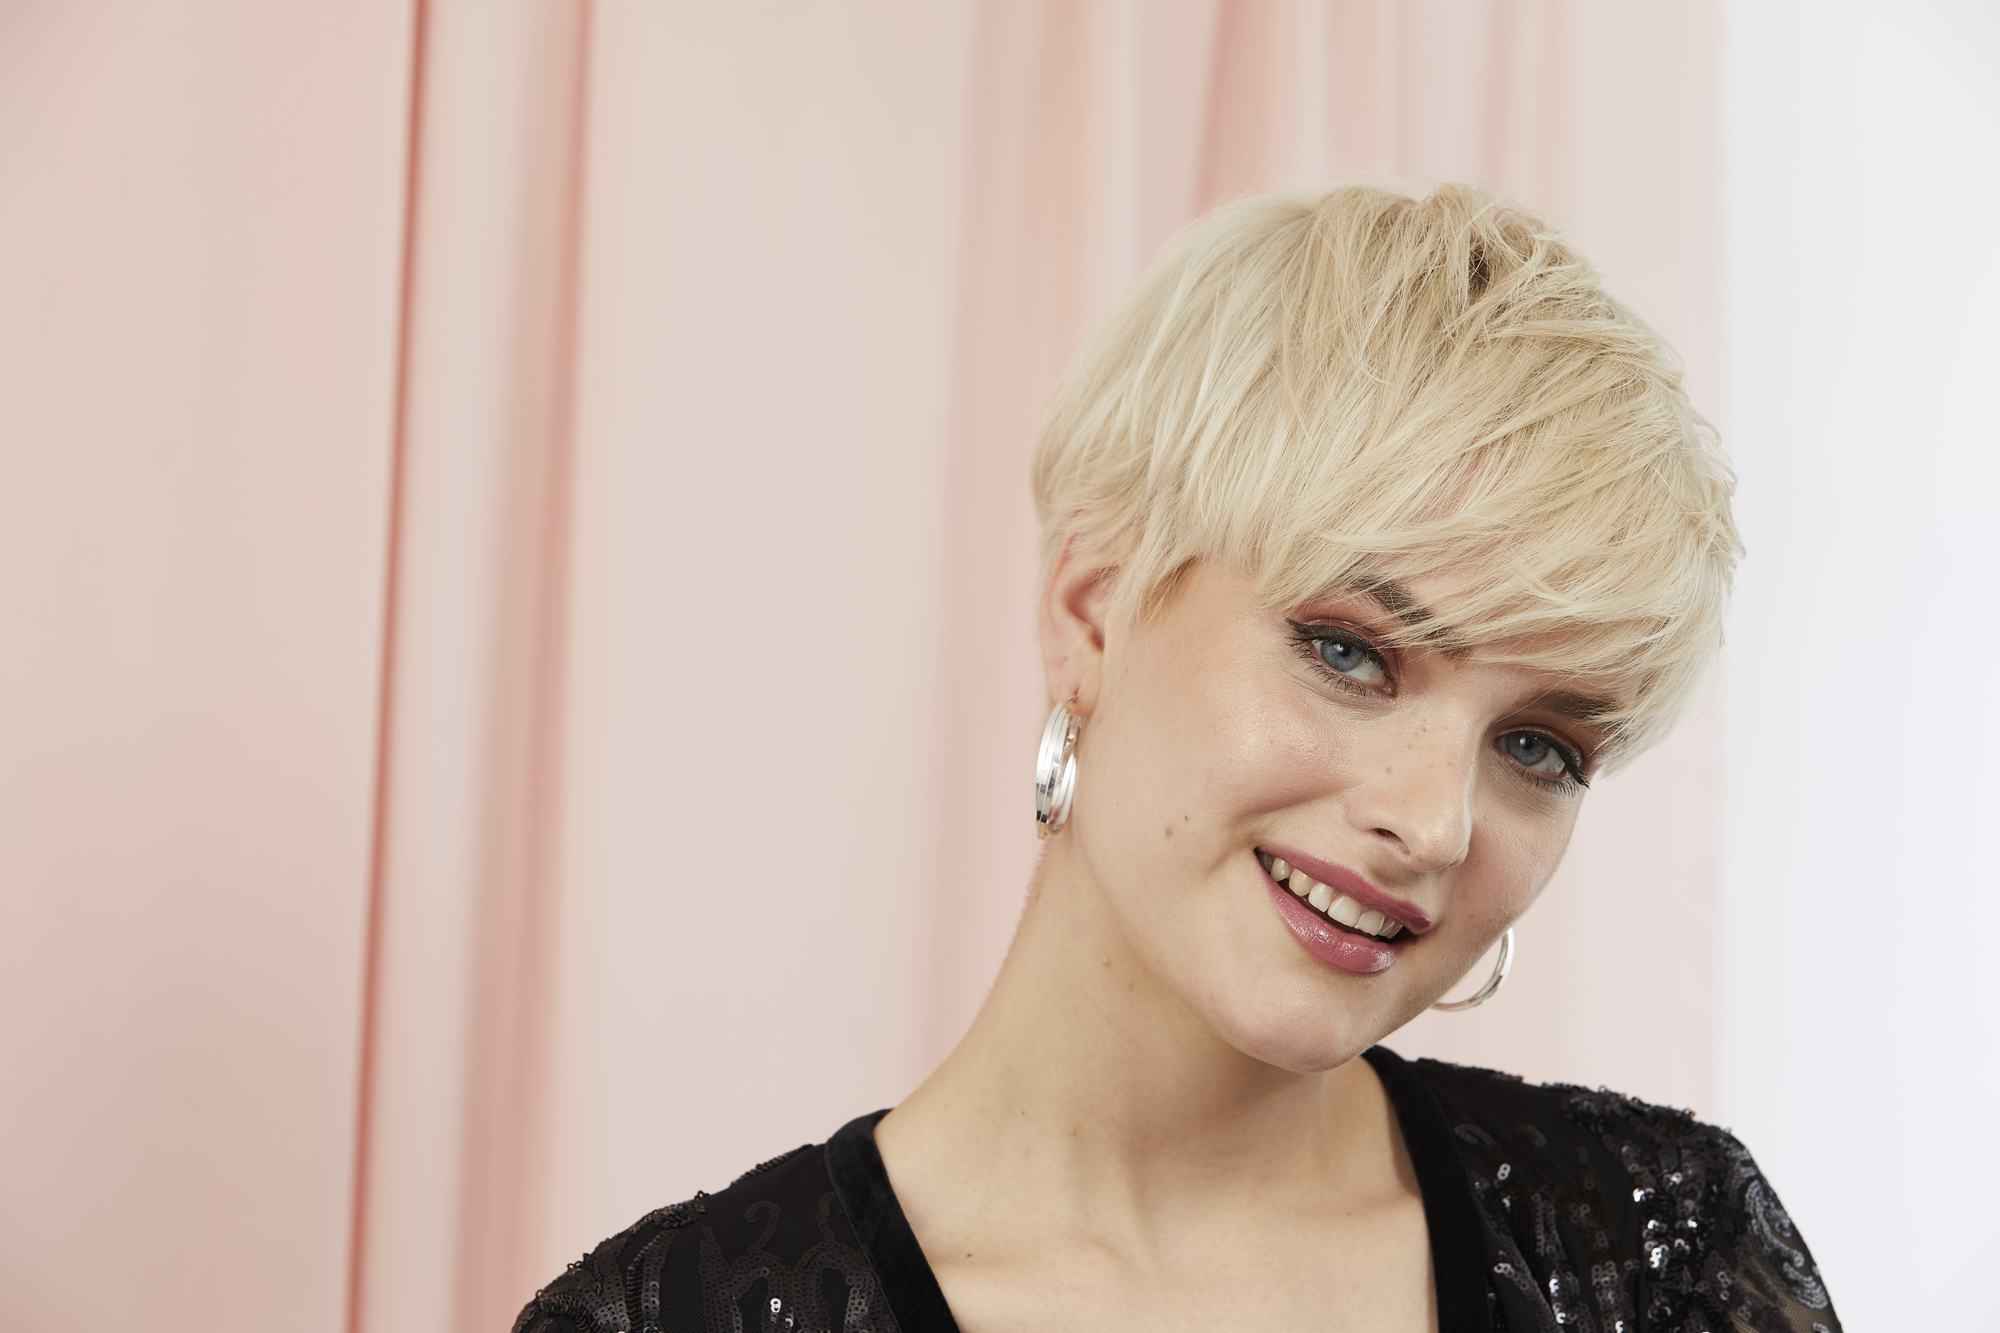 35 Best Pixie Cut Hairstyles For 2019 You Will Want To See In Sophisticated Wavy Ash Blonde Pixie Bob Hairstyles (View 5 of 20)